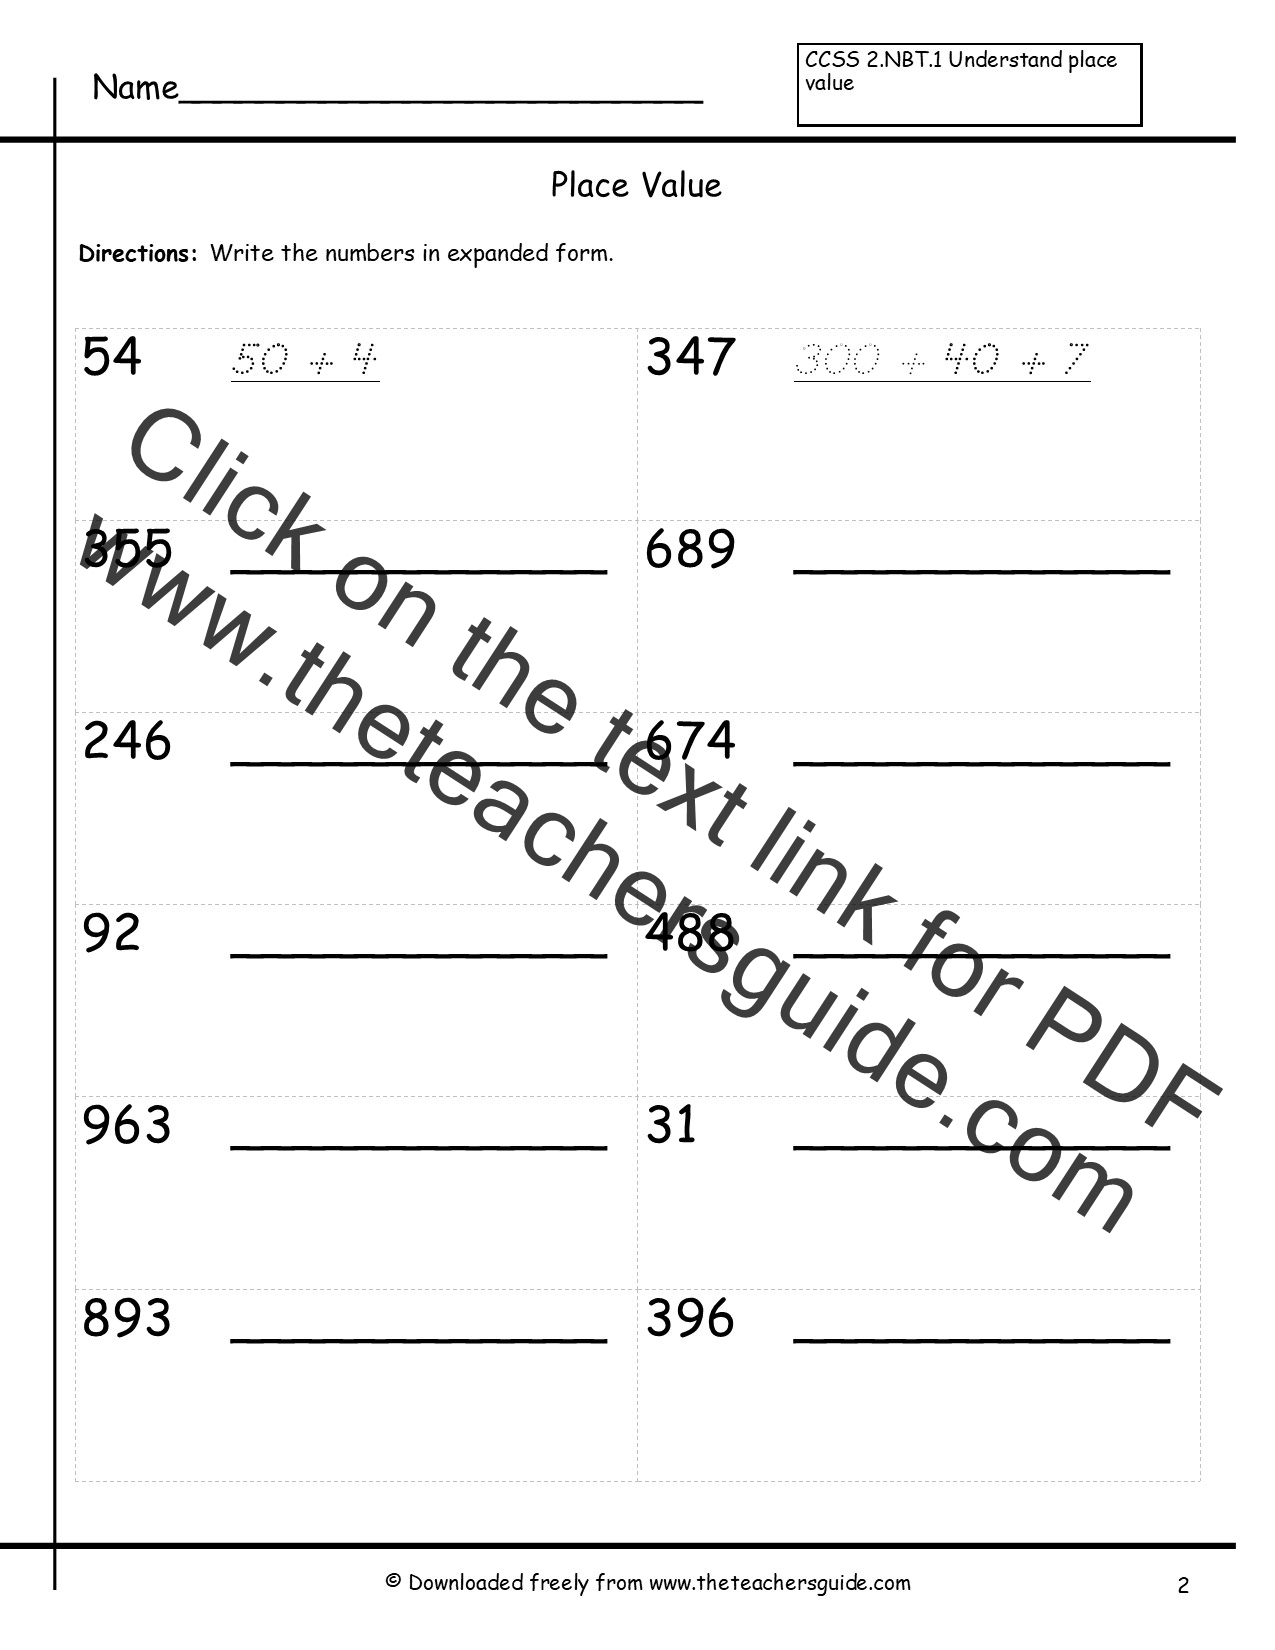 worksheet Decimal Expanded Form Worksheets decimal expanded form image collections example ideas writing decimals in images place value scalien numbers